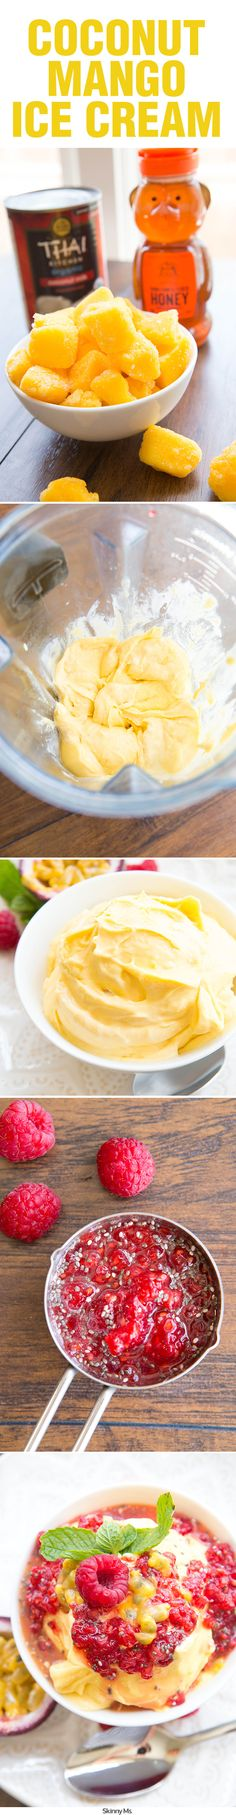 Make your own creamy, soft-serve style ice cream using just three ingredients: coconut milk, frozen fruit, and honey | Healthy Dessert Recipes | Clean Eating